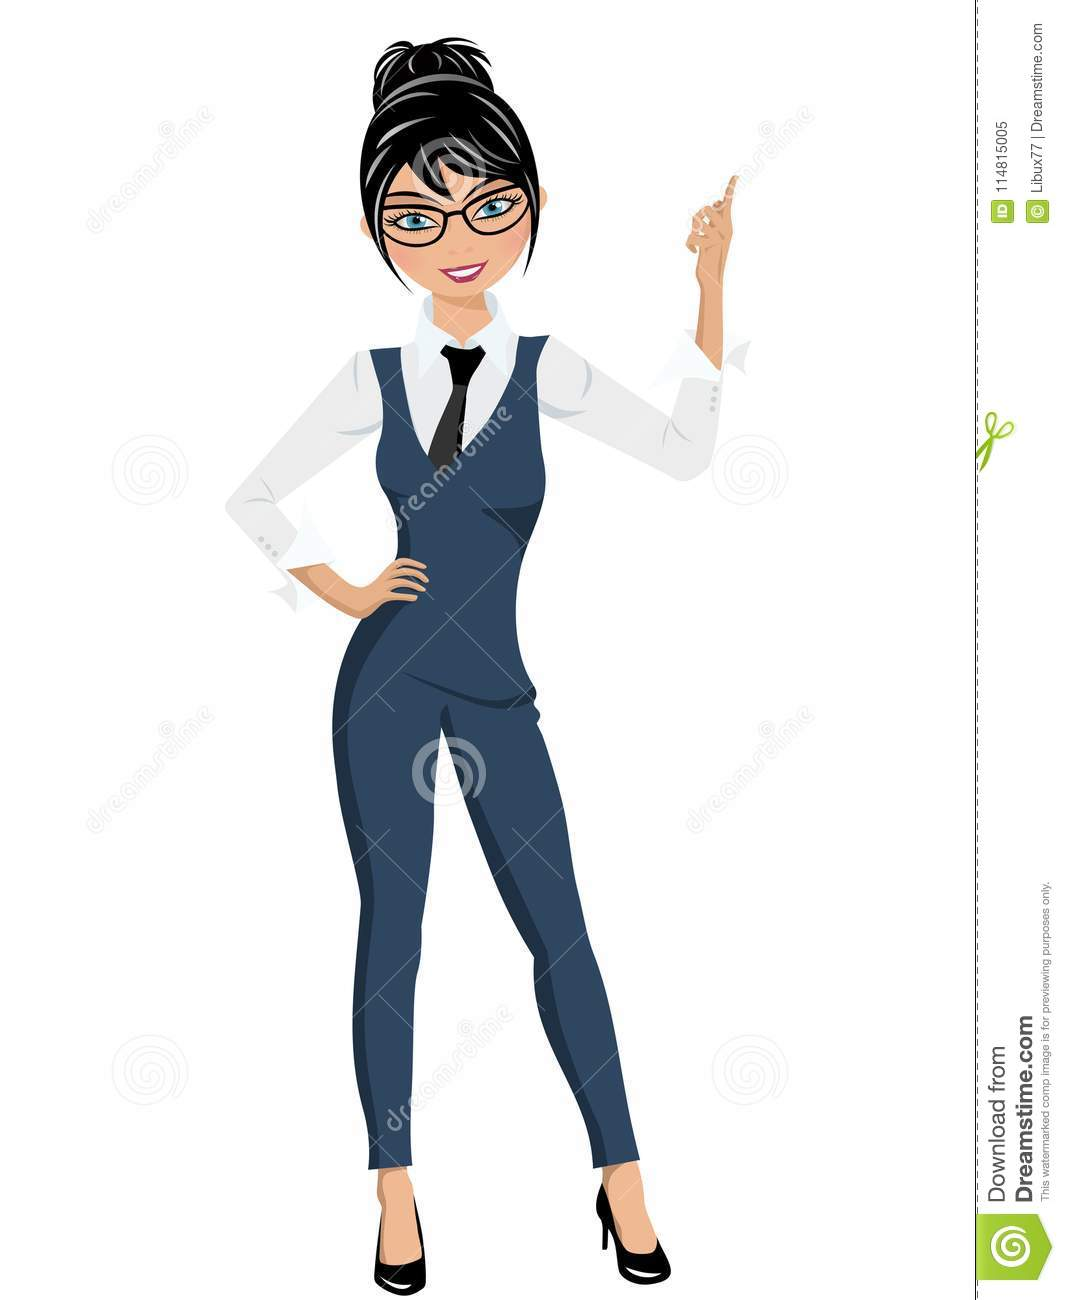 Businesswoman standing finger up pose presenting or indicating isolated